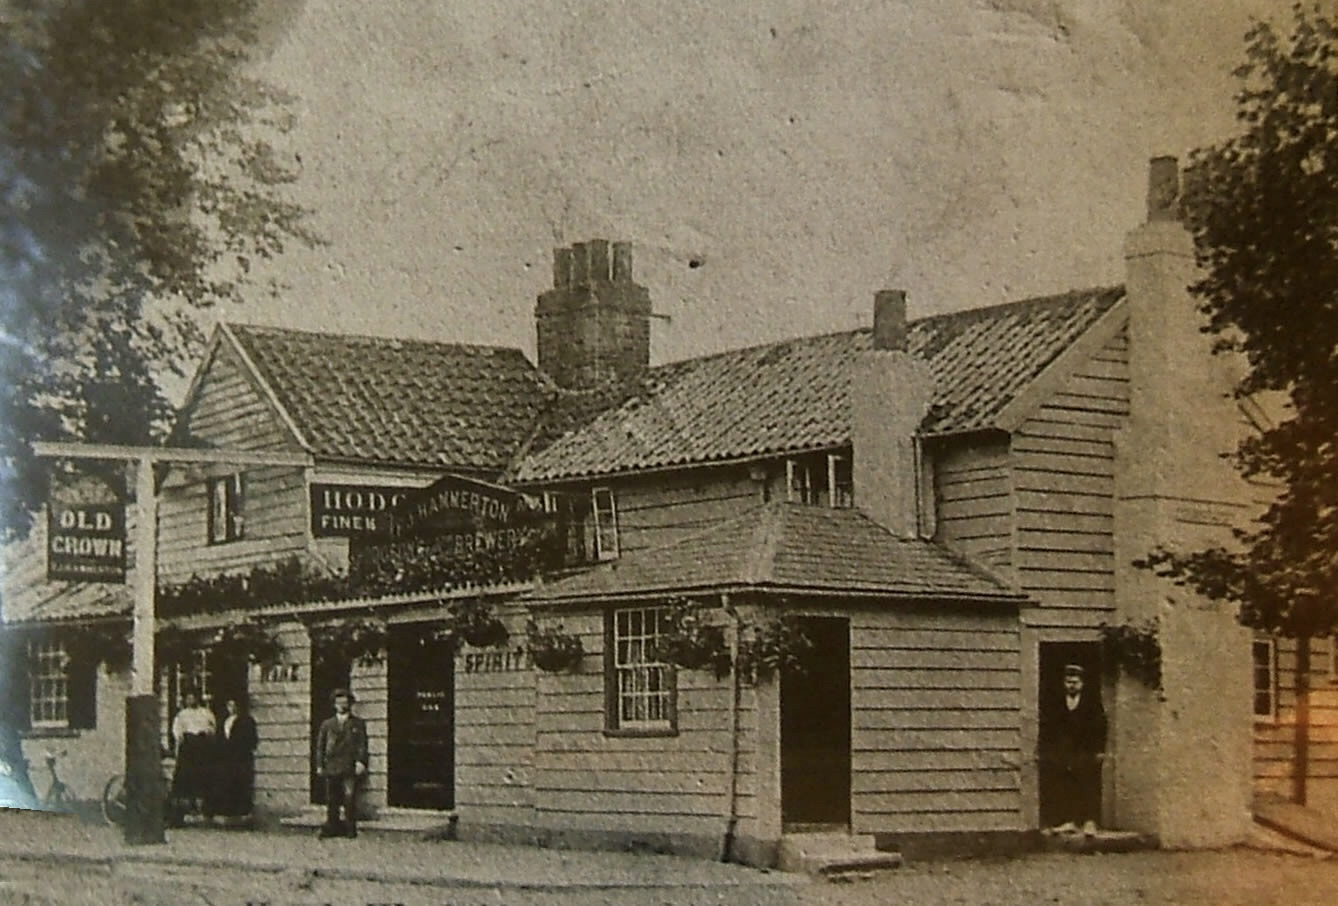 Historic Photo of Old Crown Pub Weybridge Surrey - Part of Hodgsons Brewery